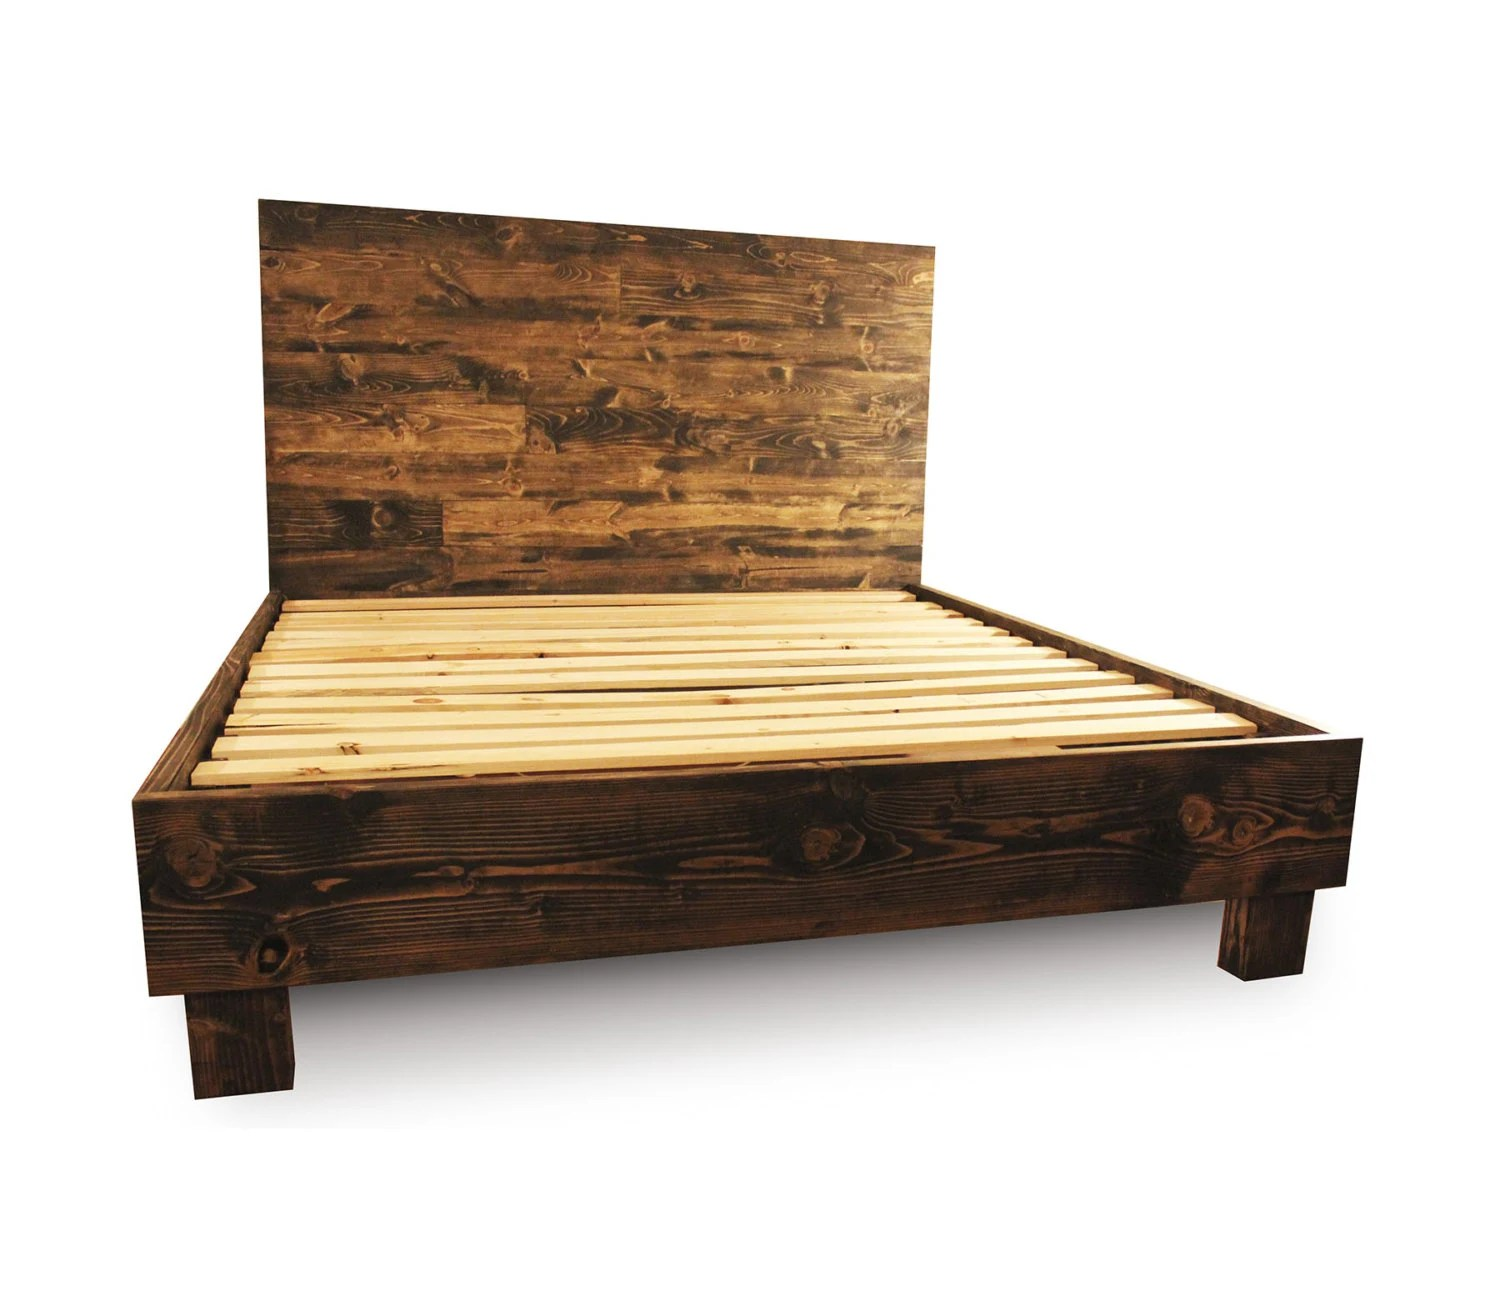 Rustikales Holzbett Rustic Solid Wood Platform Bed Frame And Headboard Reclaimed